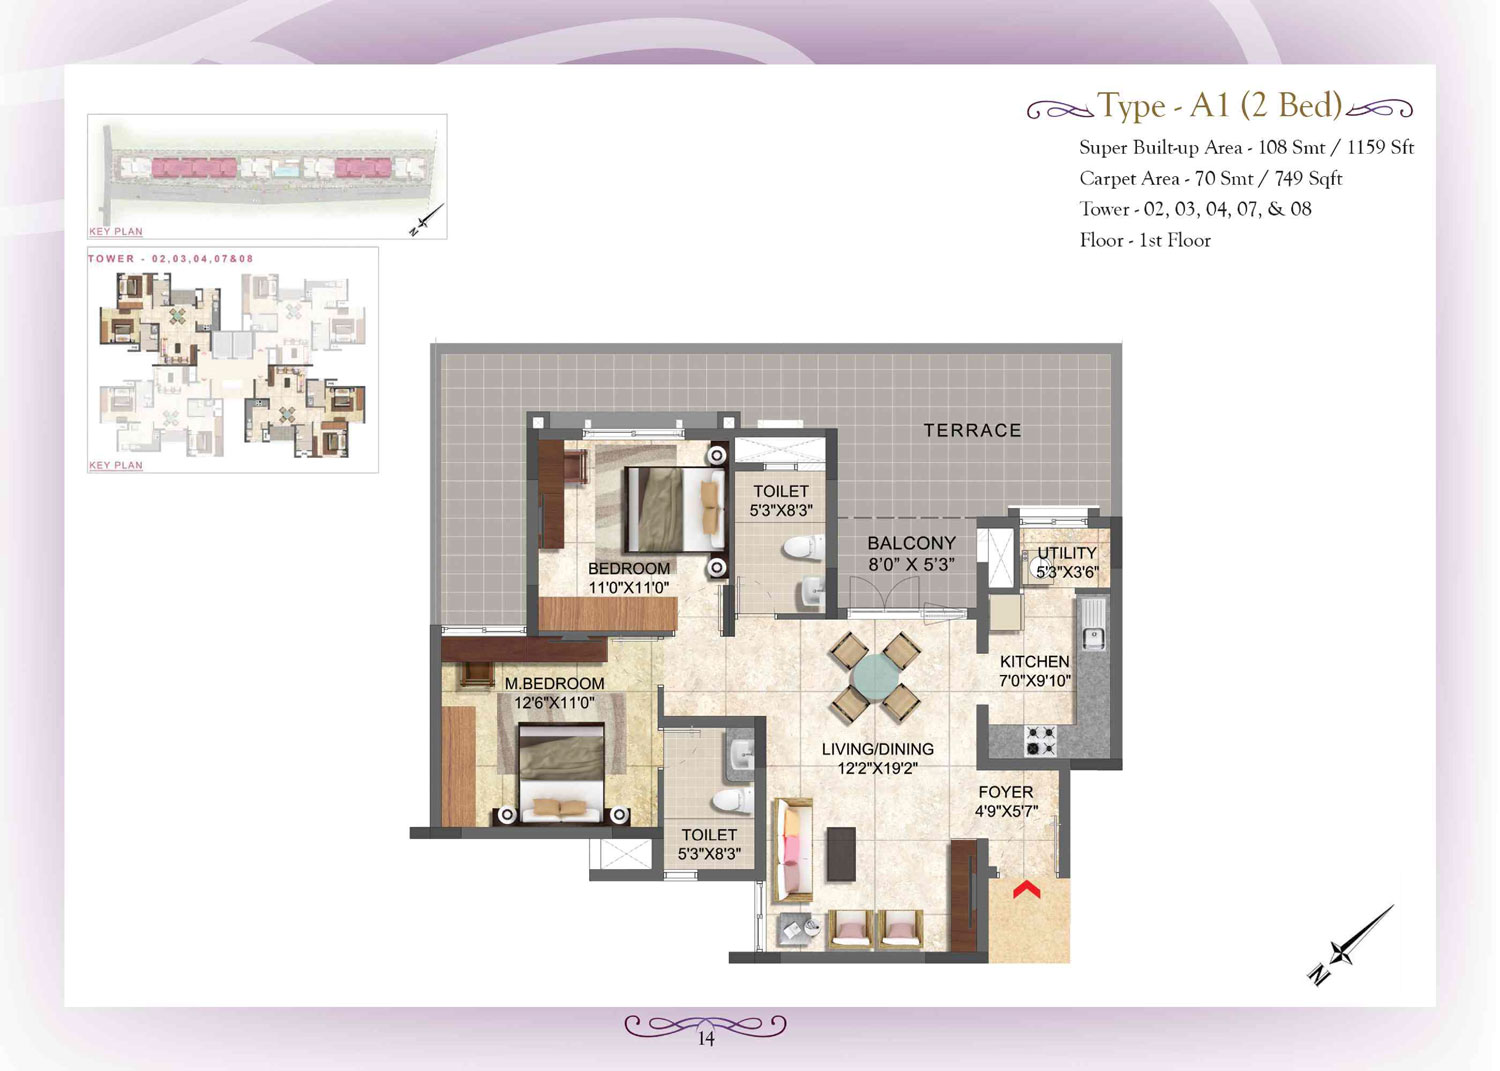 Type A1 - 2 Bed - 1159 Sq Ft